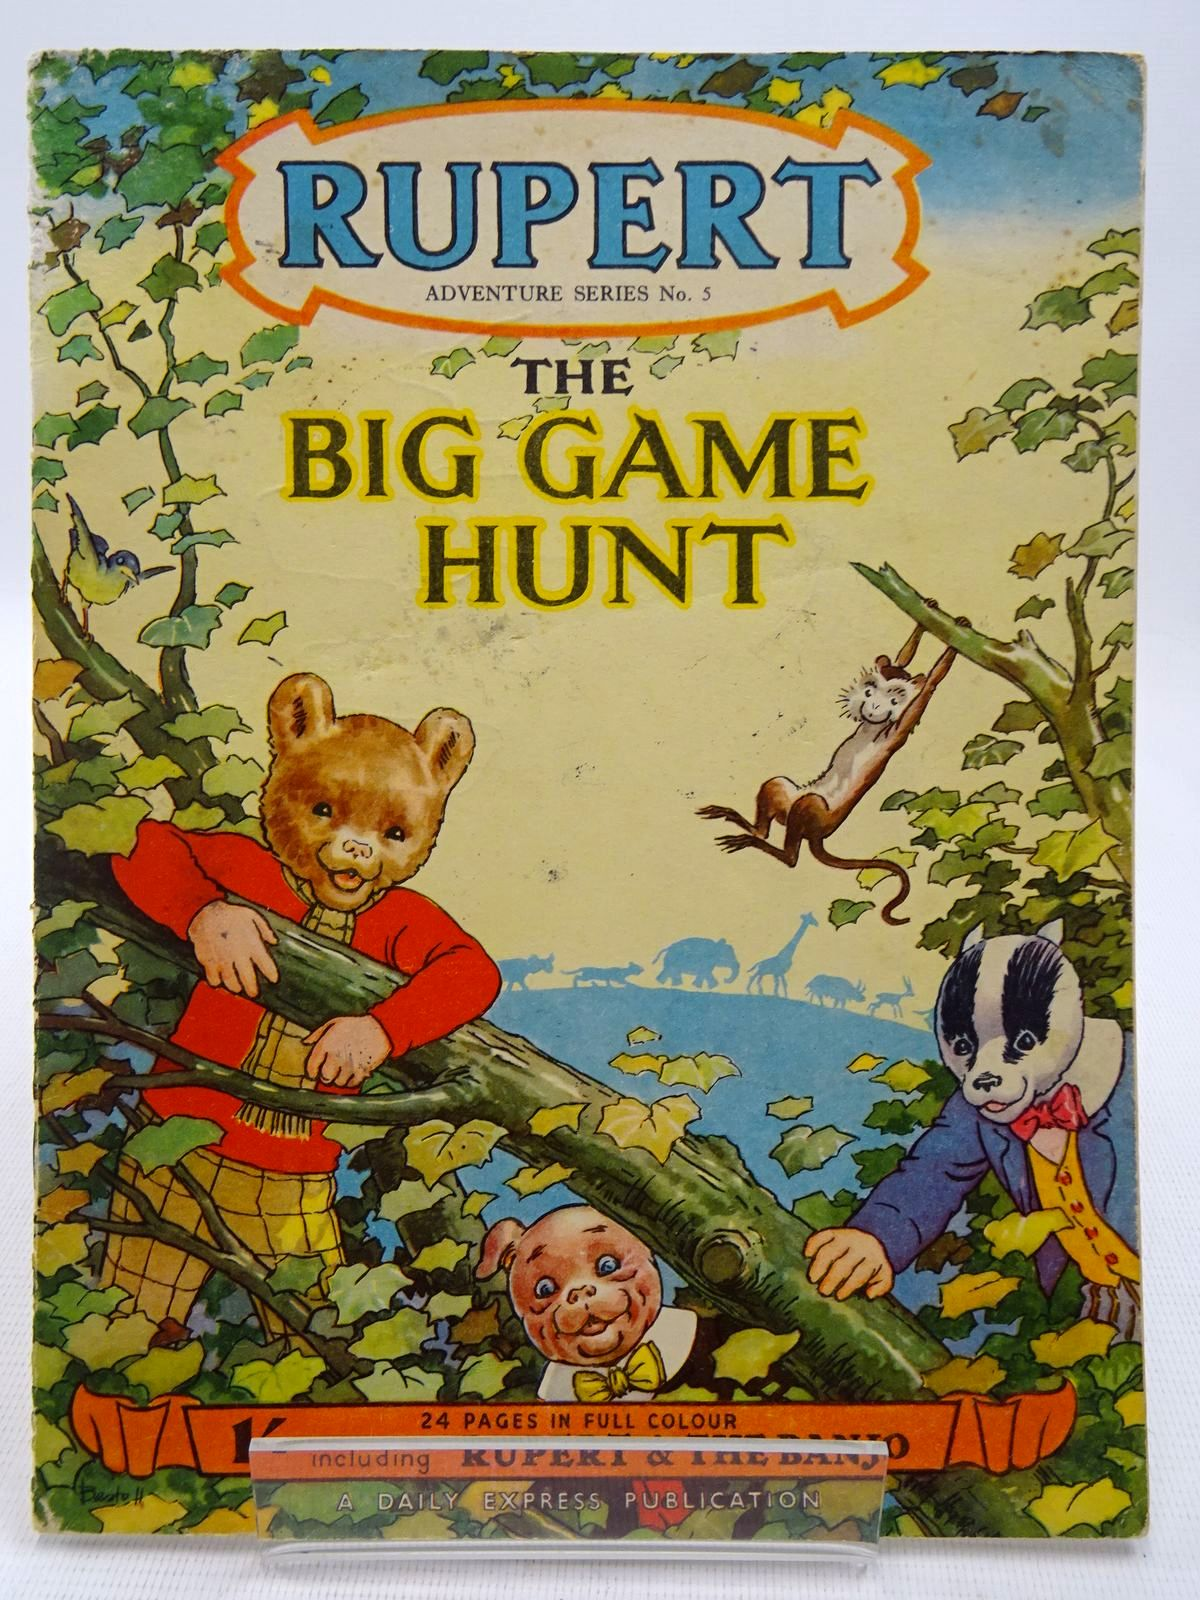 Photo of RUPERT ADVENTURE SERIES No. 5 - THE BIG GAME HUNT- Stock Number: 2128604